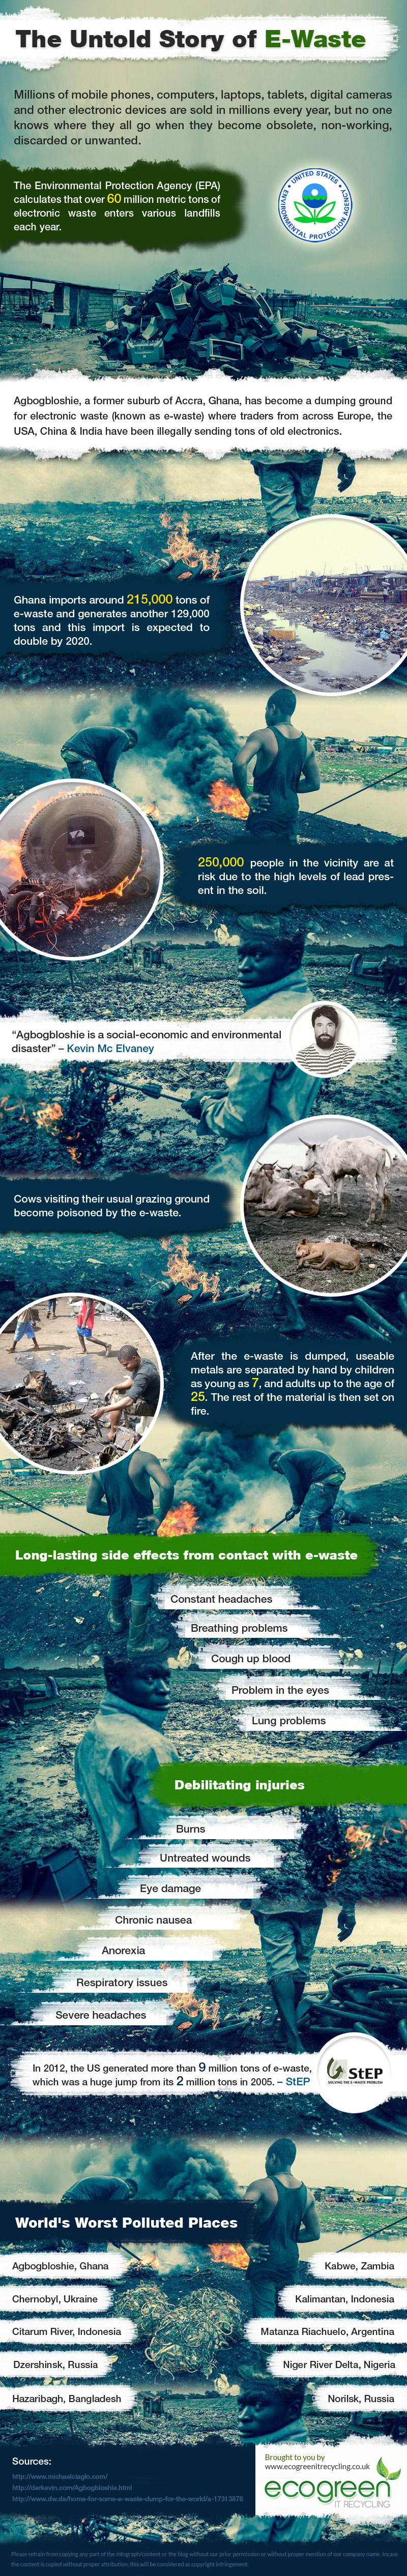 e-waste, e-waste infographic, ewaste, electronic waste, environmental issues